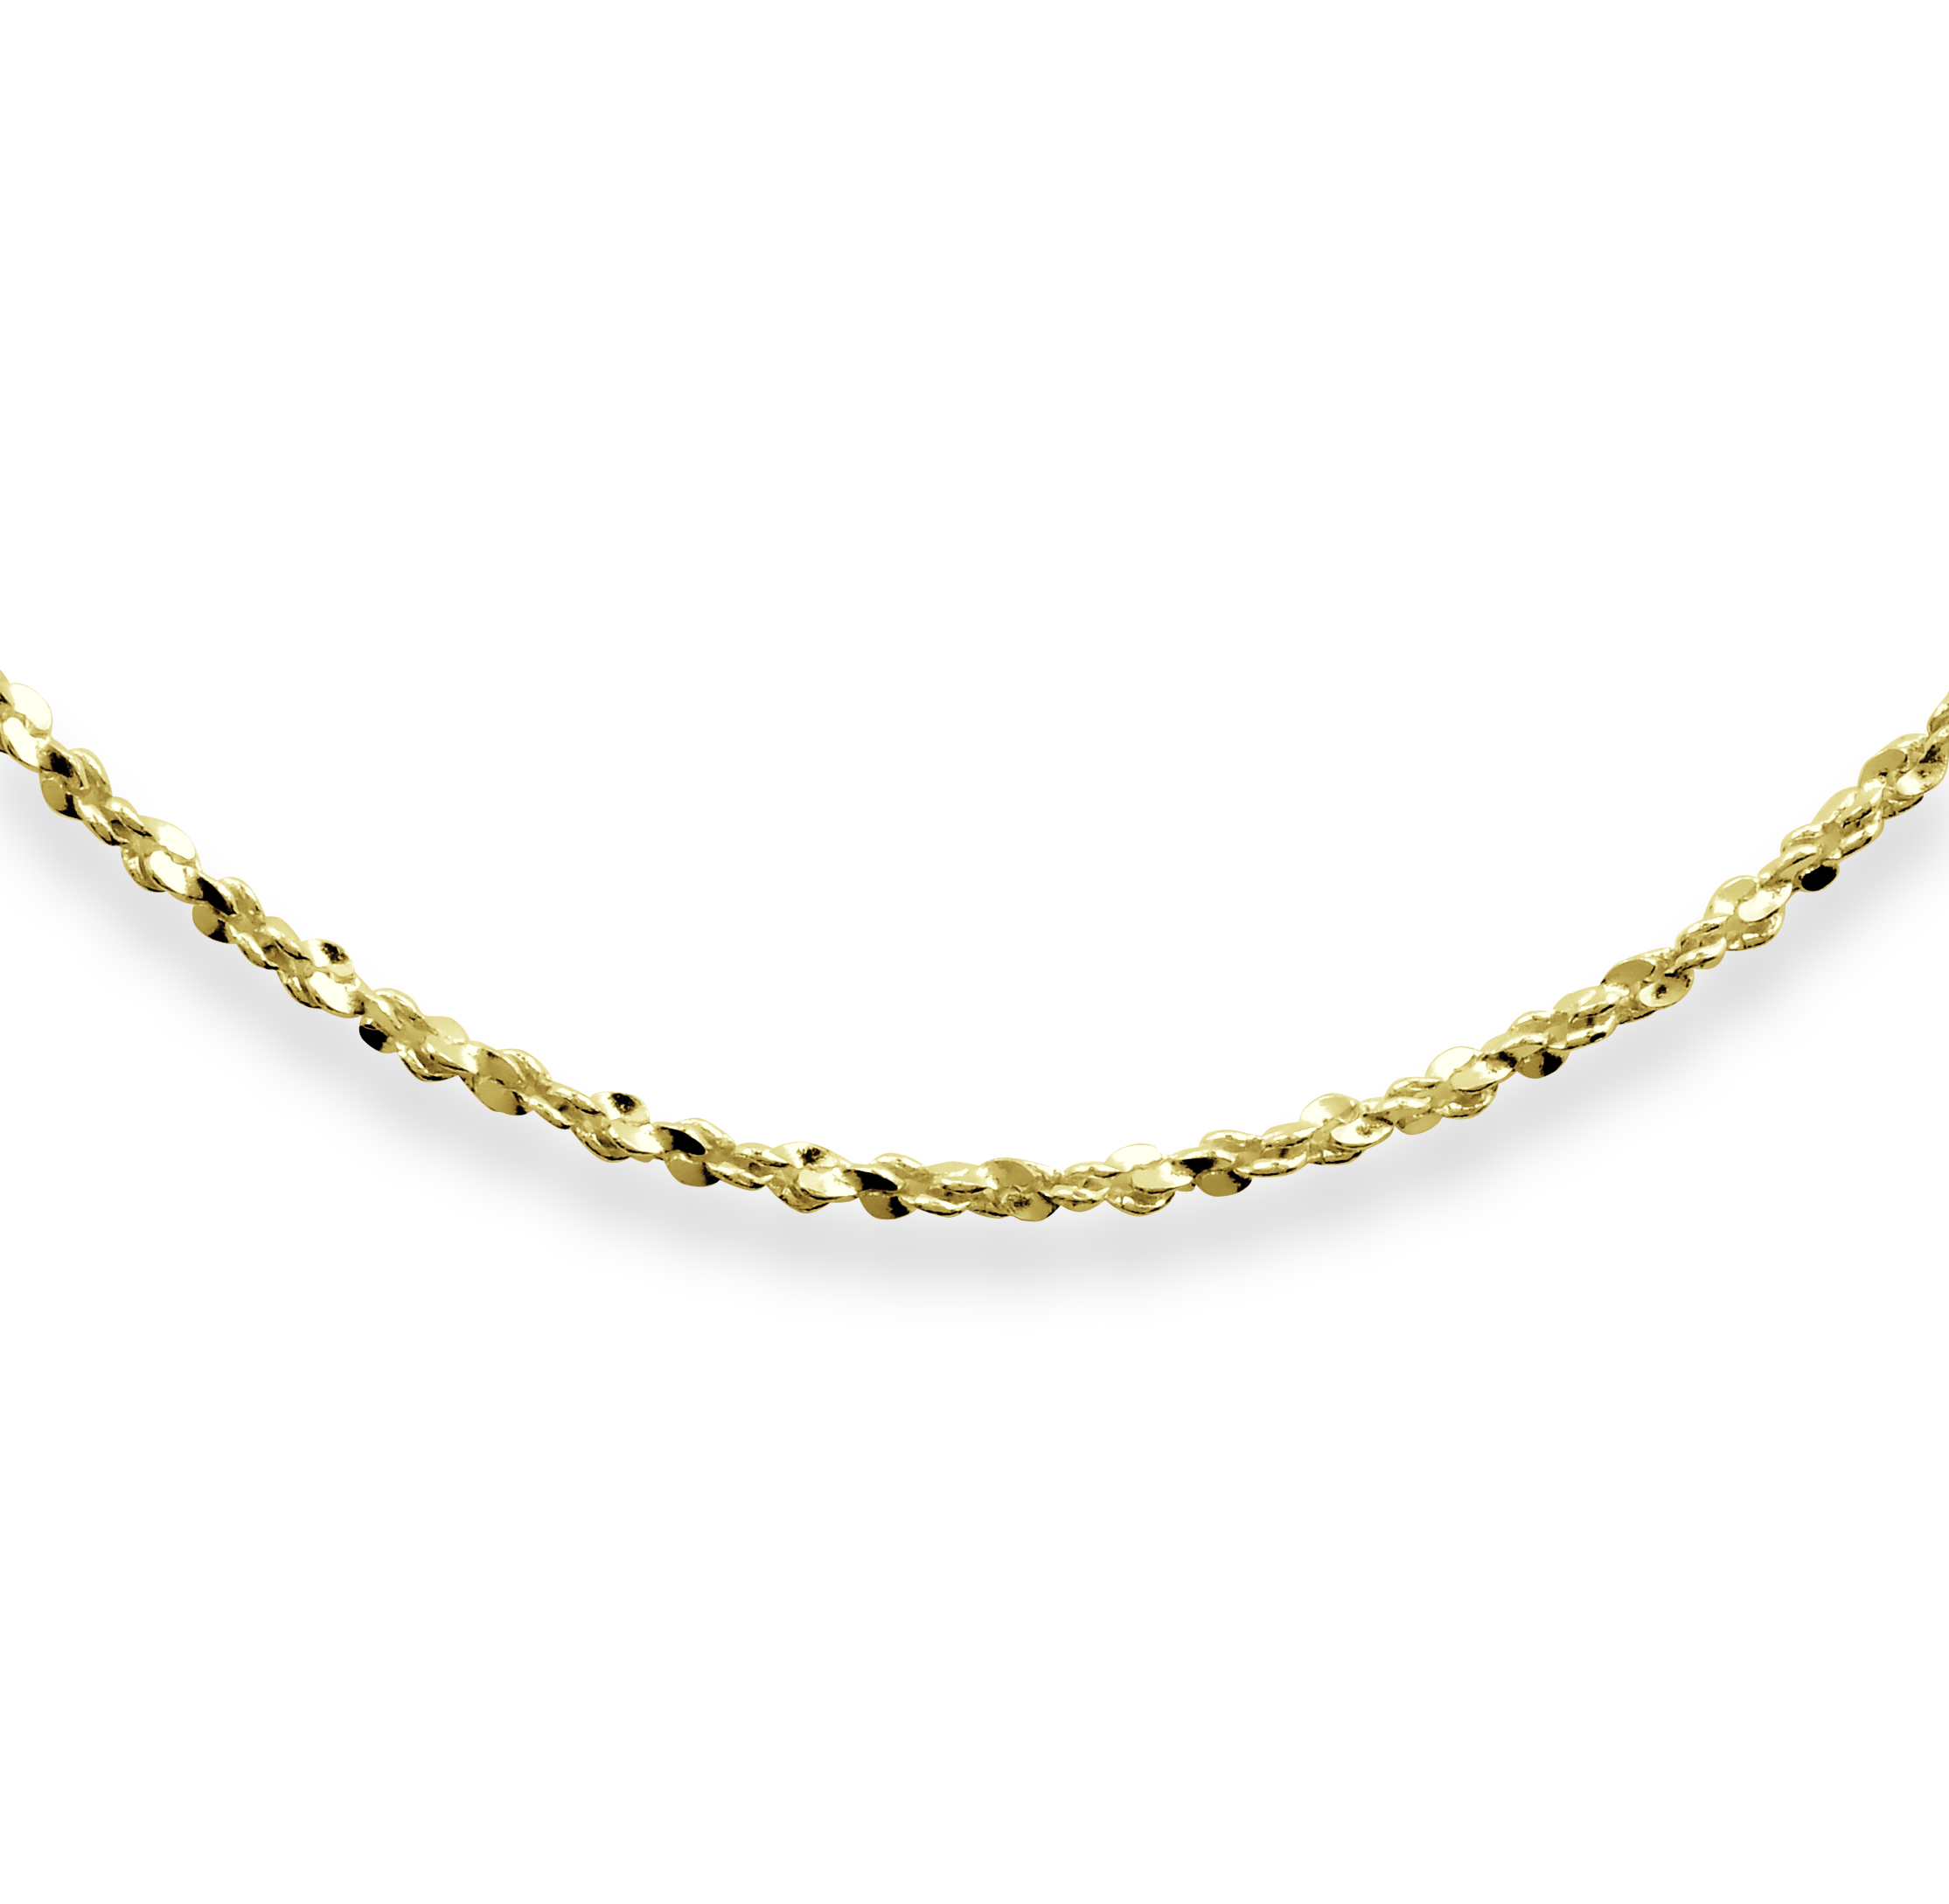 24'' Serpentine Twist Chain for Ladies - 10K yellow Gold